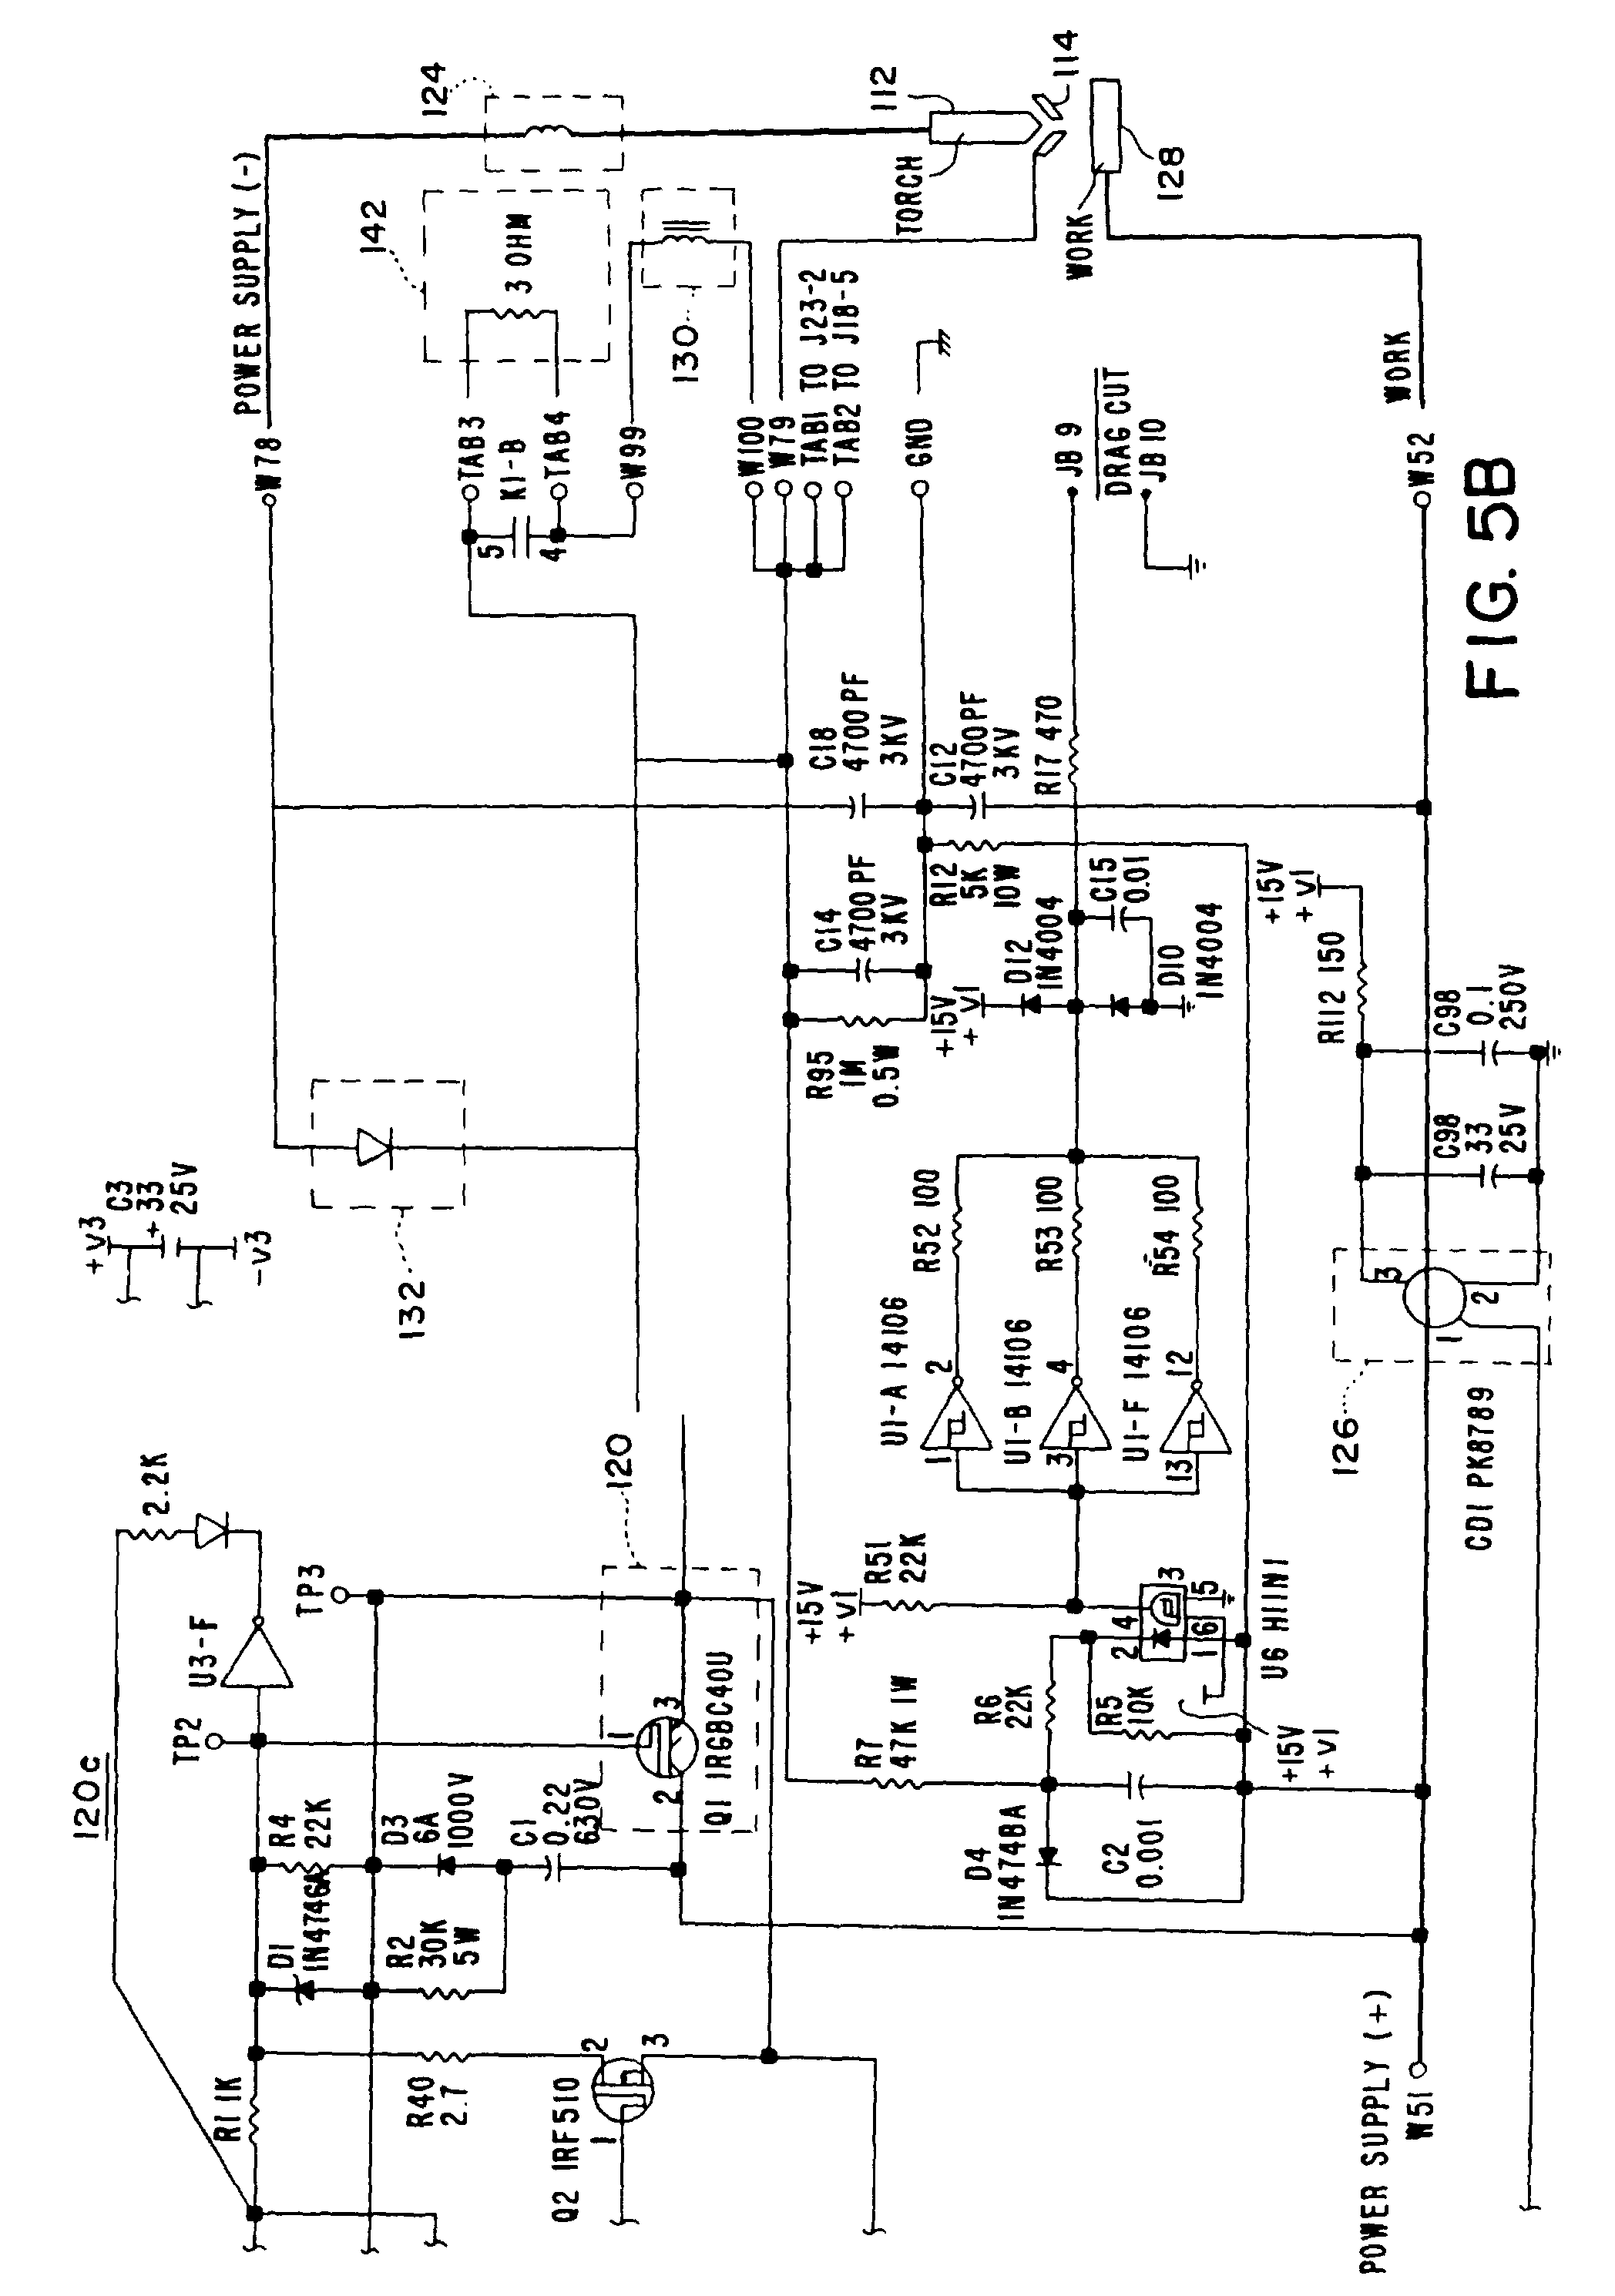 Howell Fuel Injection Wiring Diagram Com